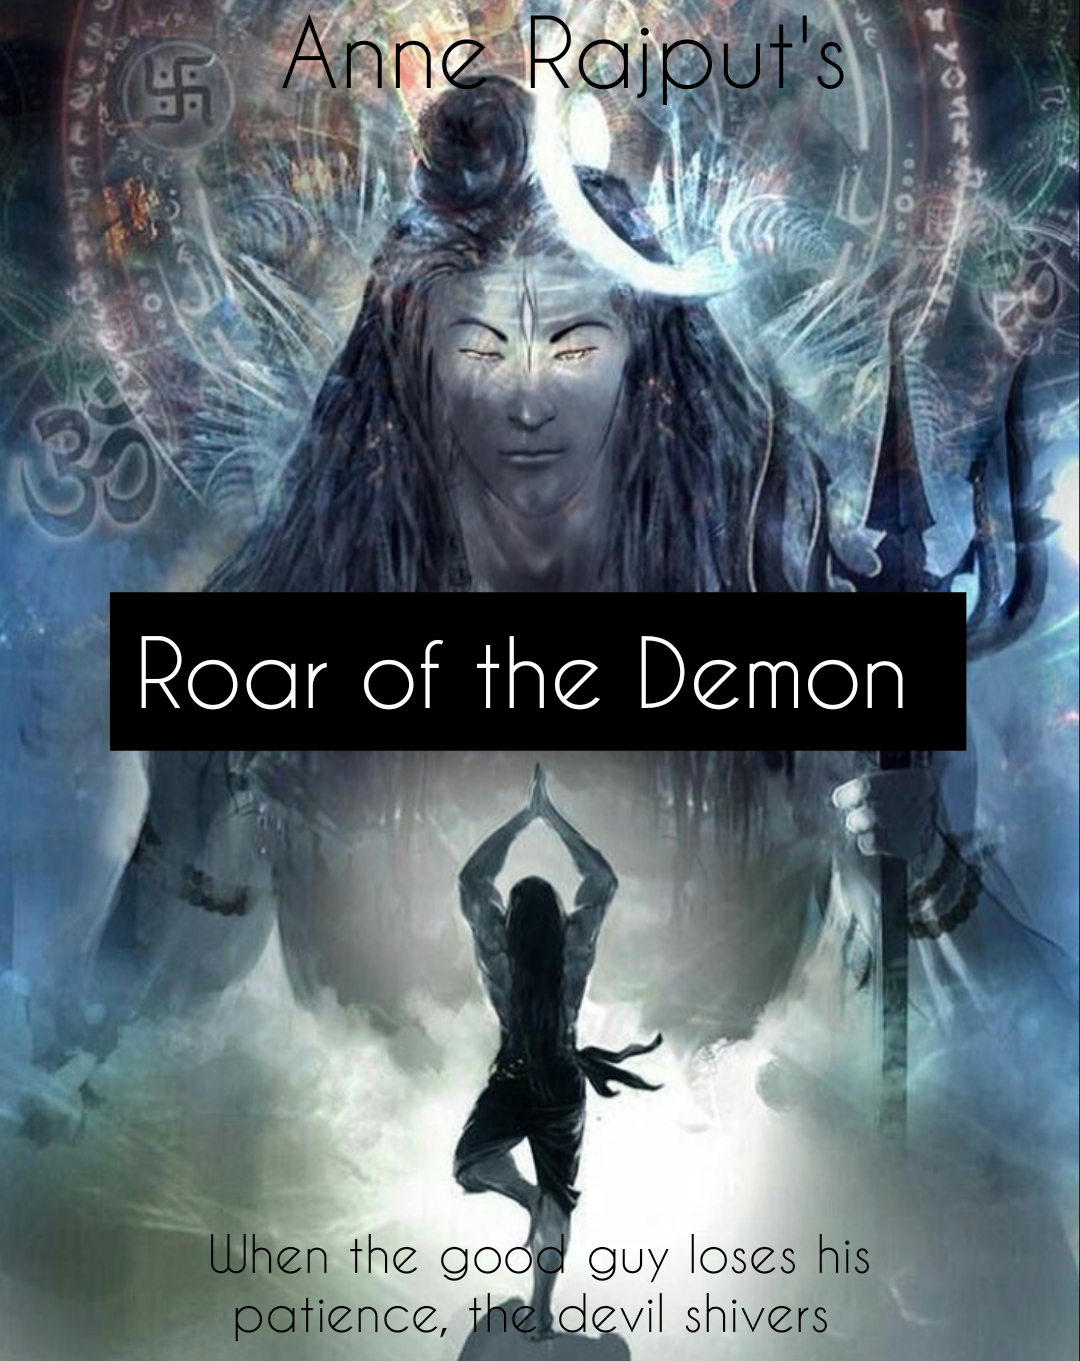 The Roar of the demon